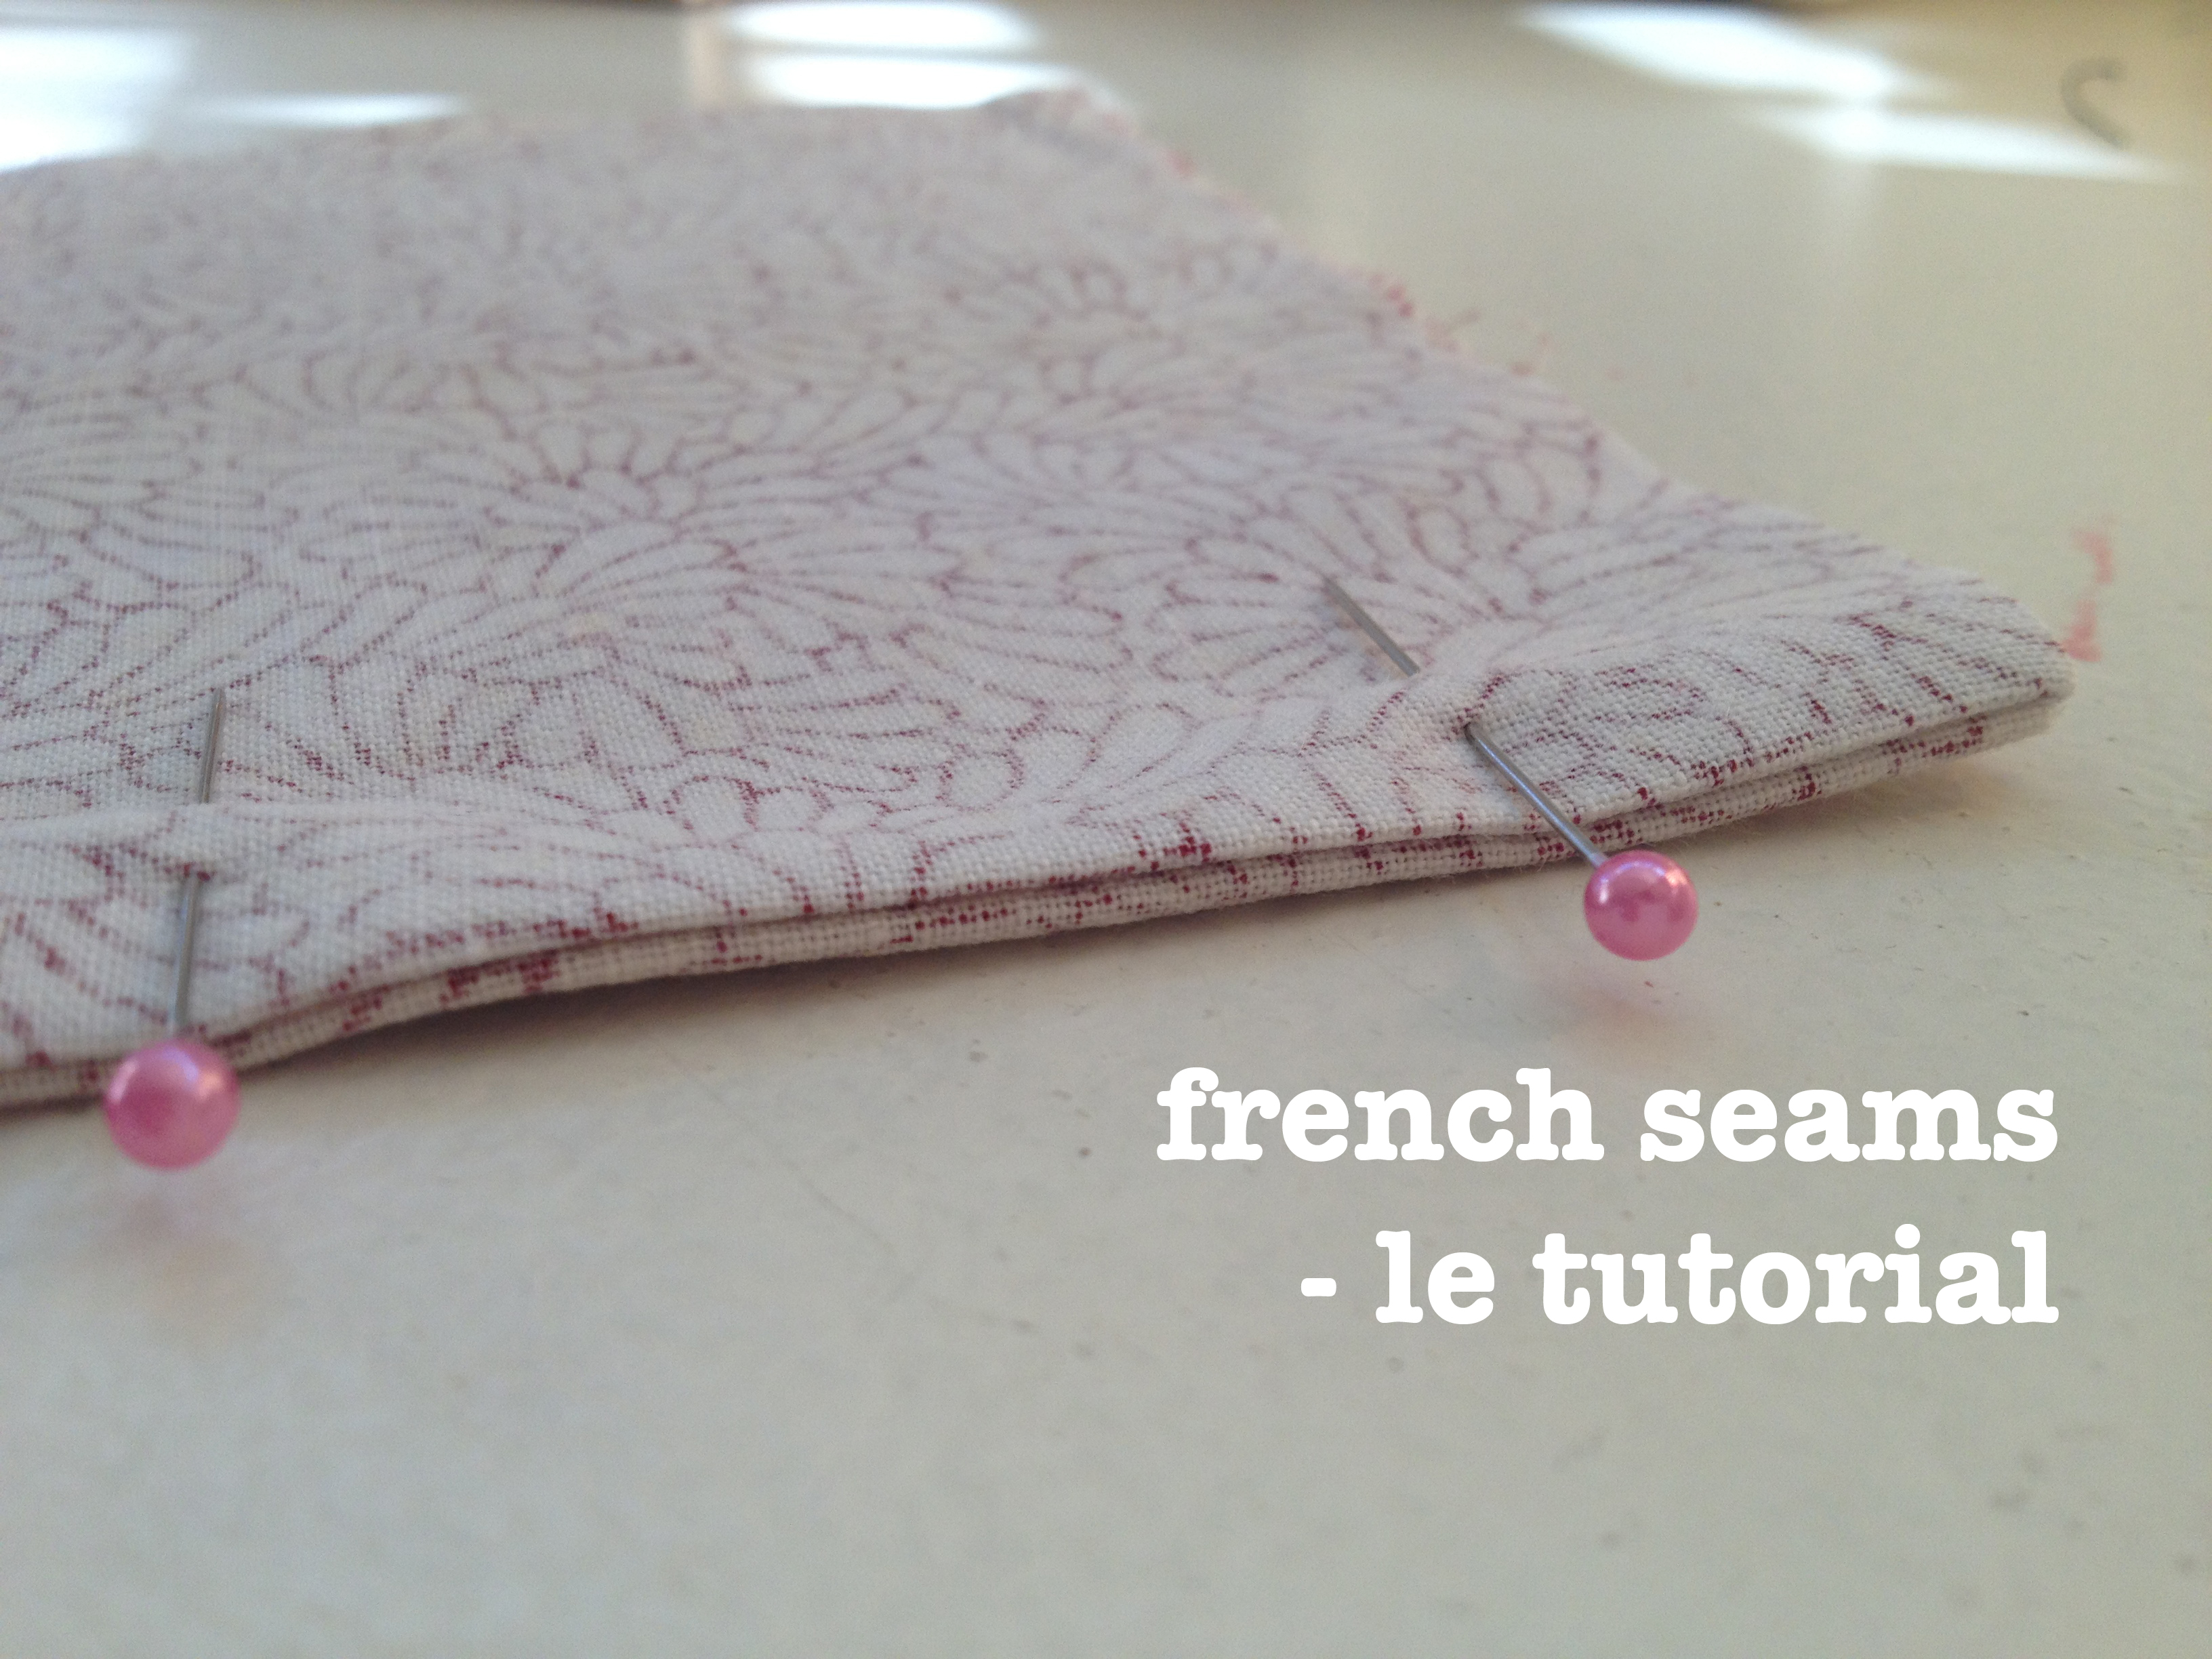 Nerdy sewing tips - French seams